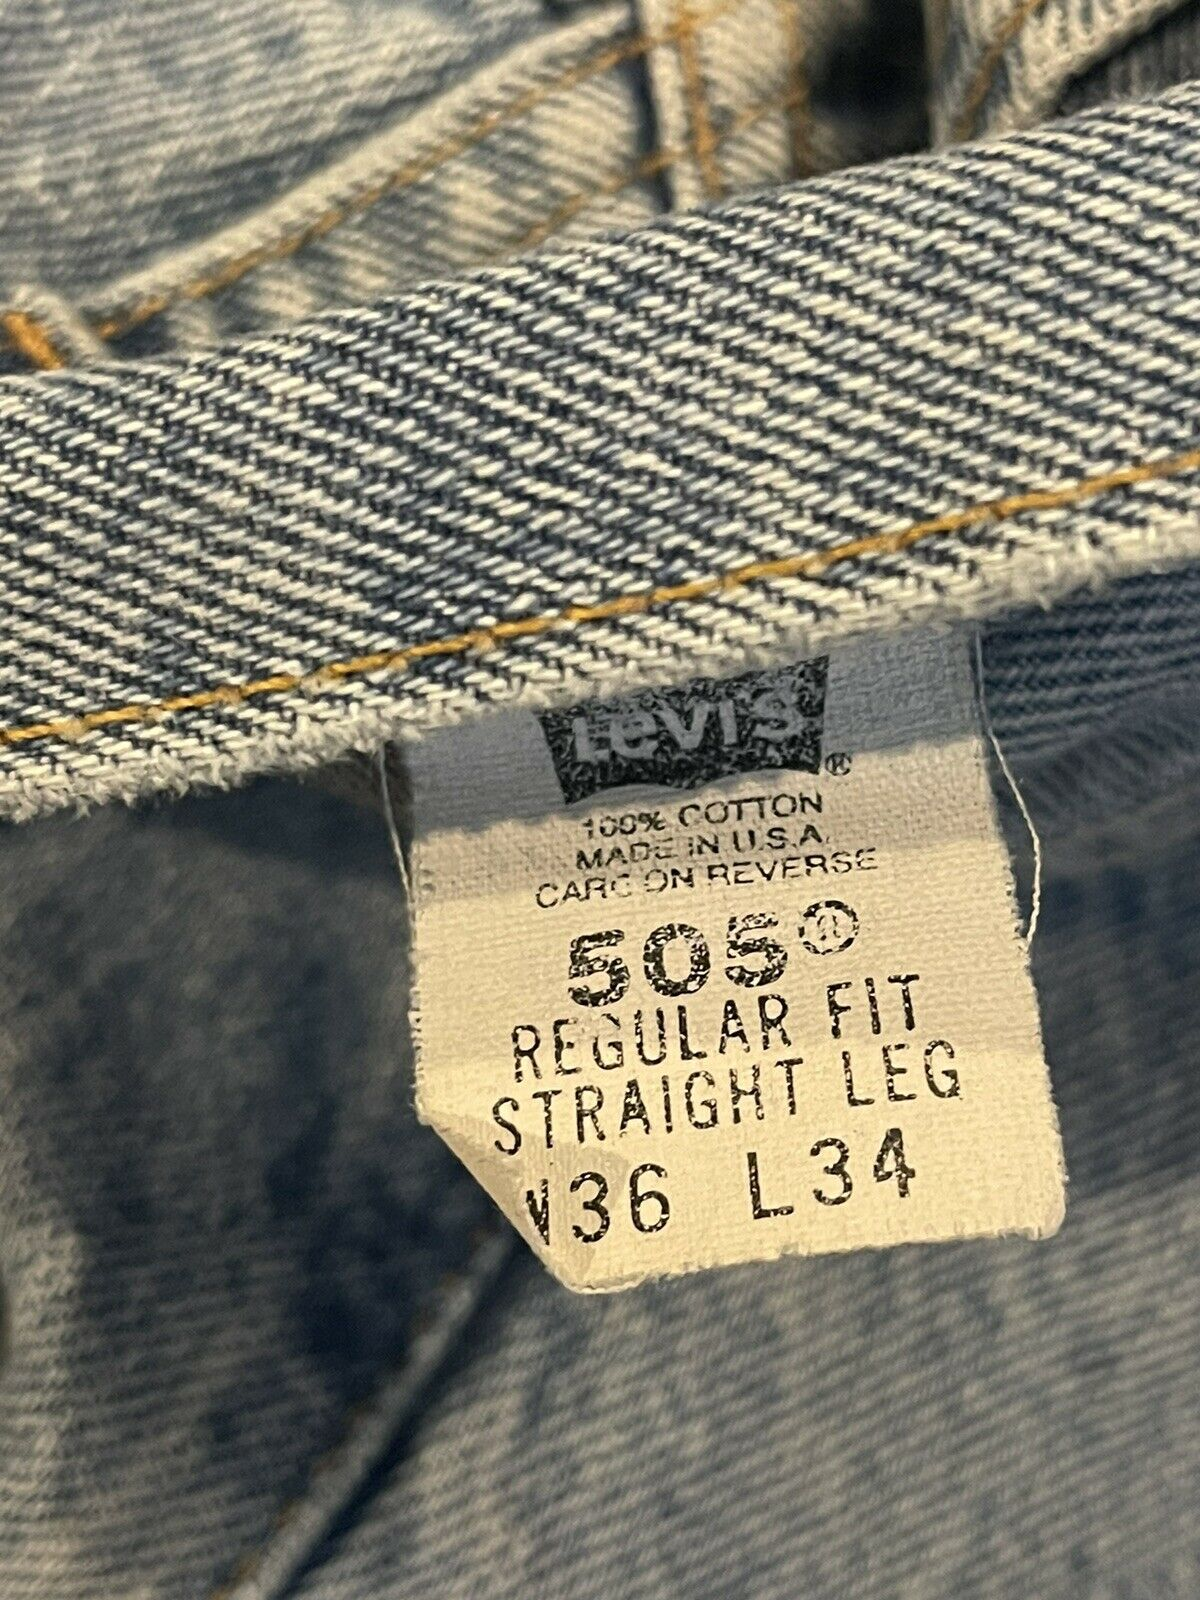 vintage levis 505 made in usa 36x34 - image 4